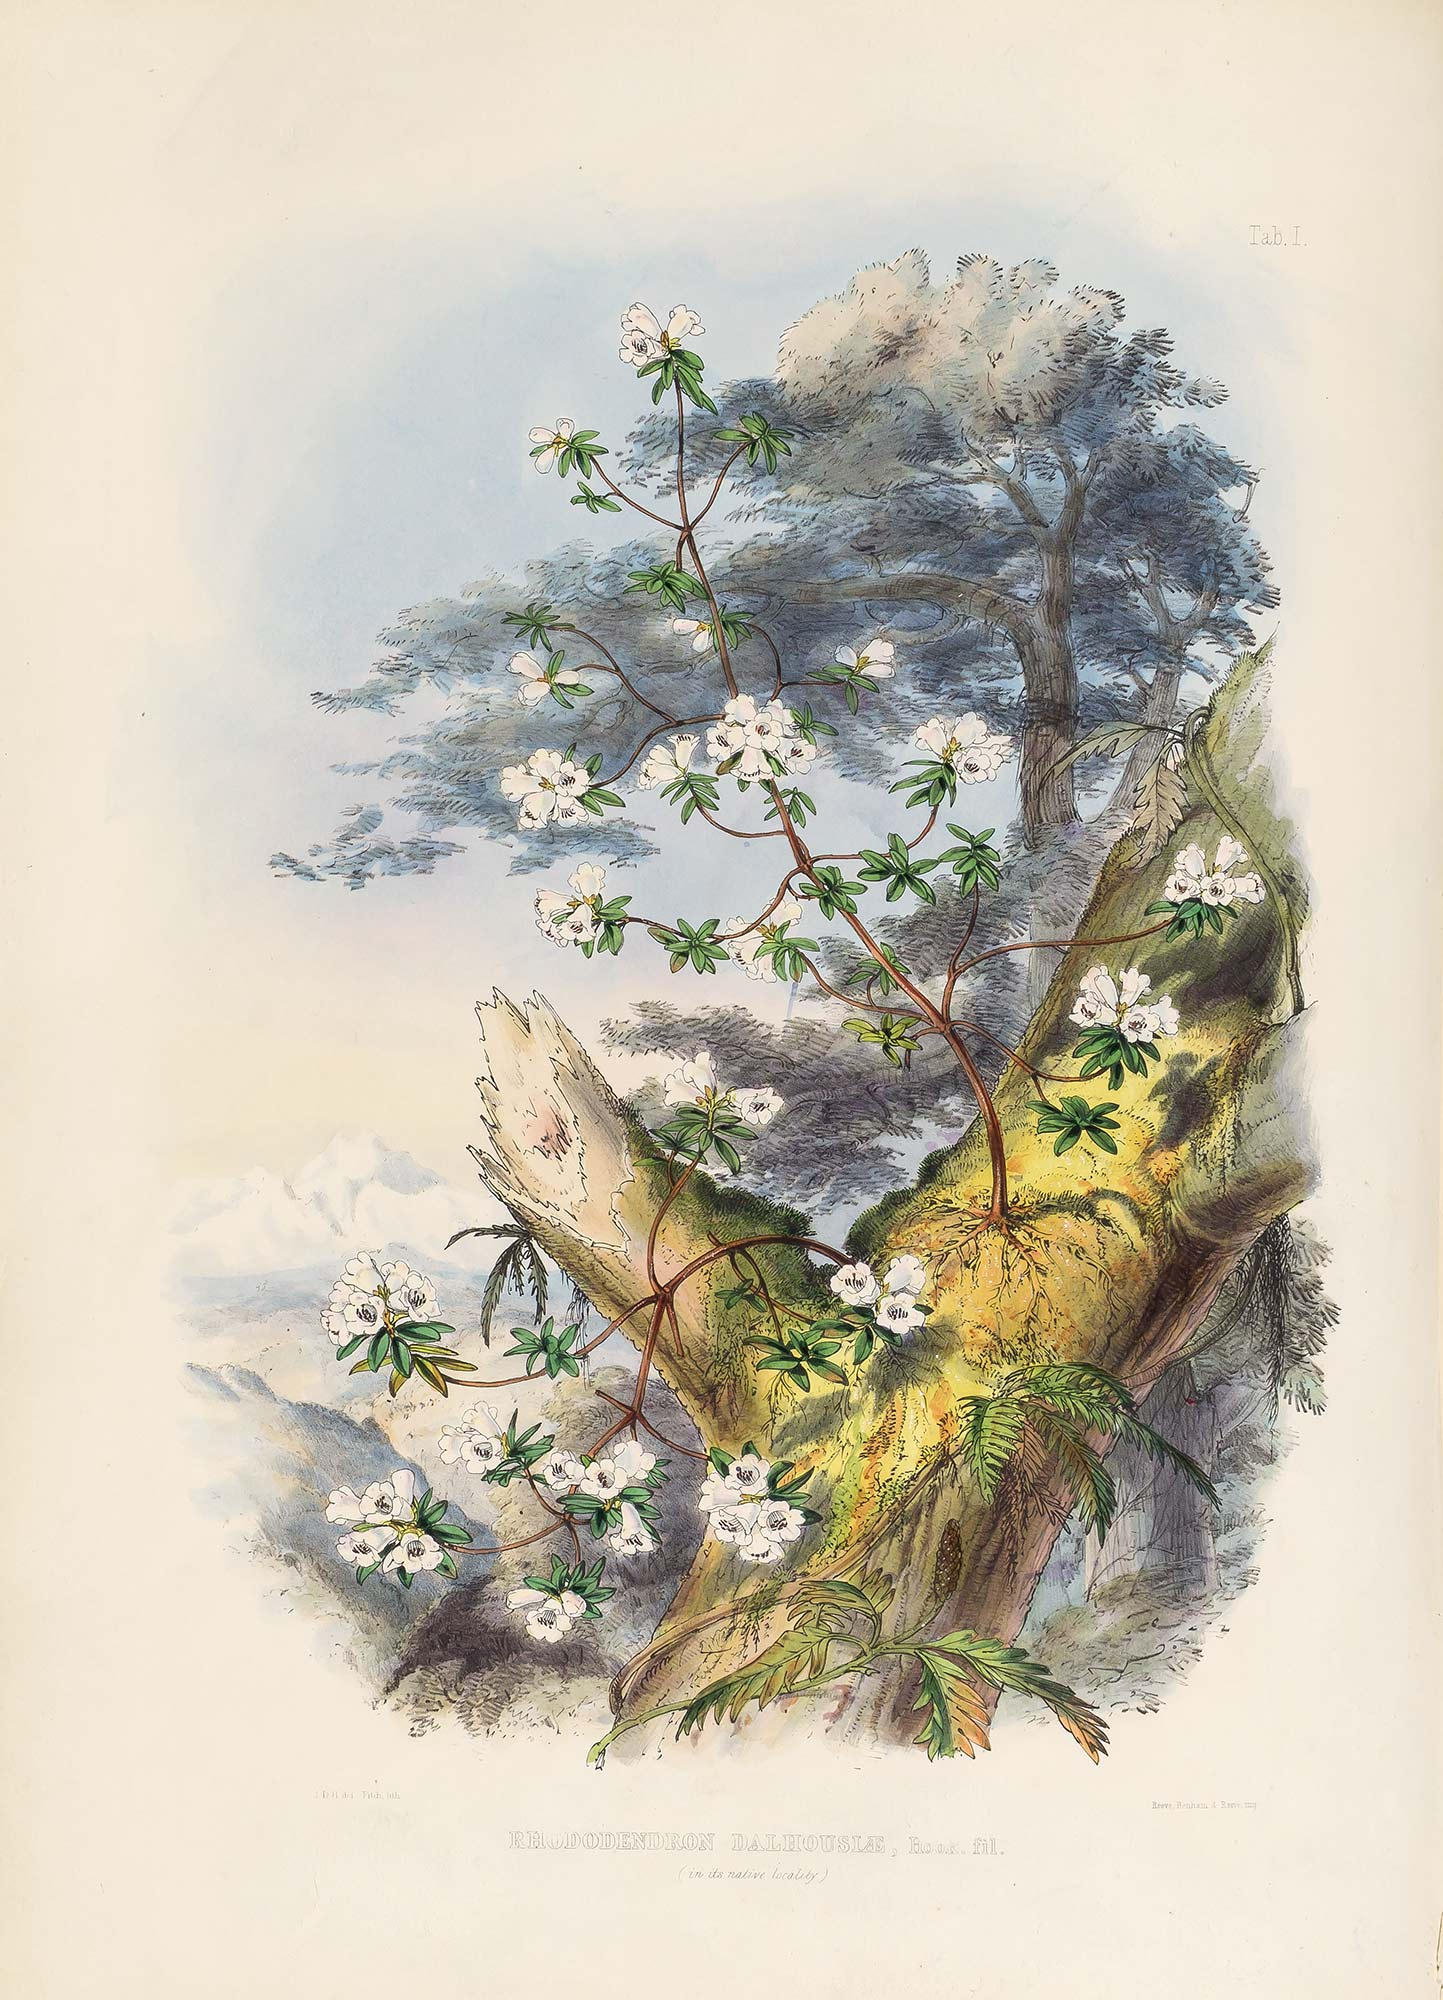 Lot image - HOOKER, JOSEPH DALTON, Sir  The Rhododendrons of Sikkim-Himalaya, being an account ... of the rhododendrons recently discovered in the mountains of Eastern Himalaya ... edited by Sir W. J. Hooker.